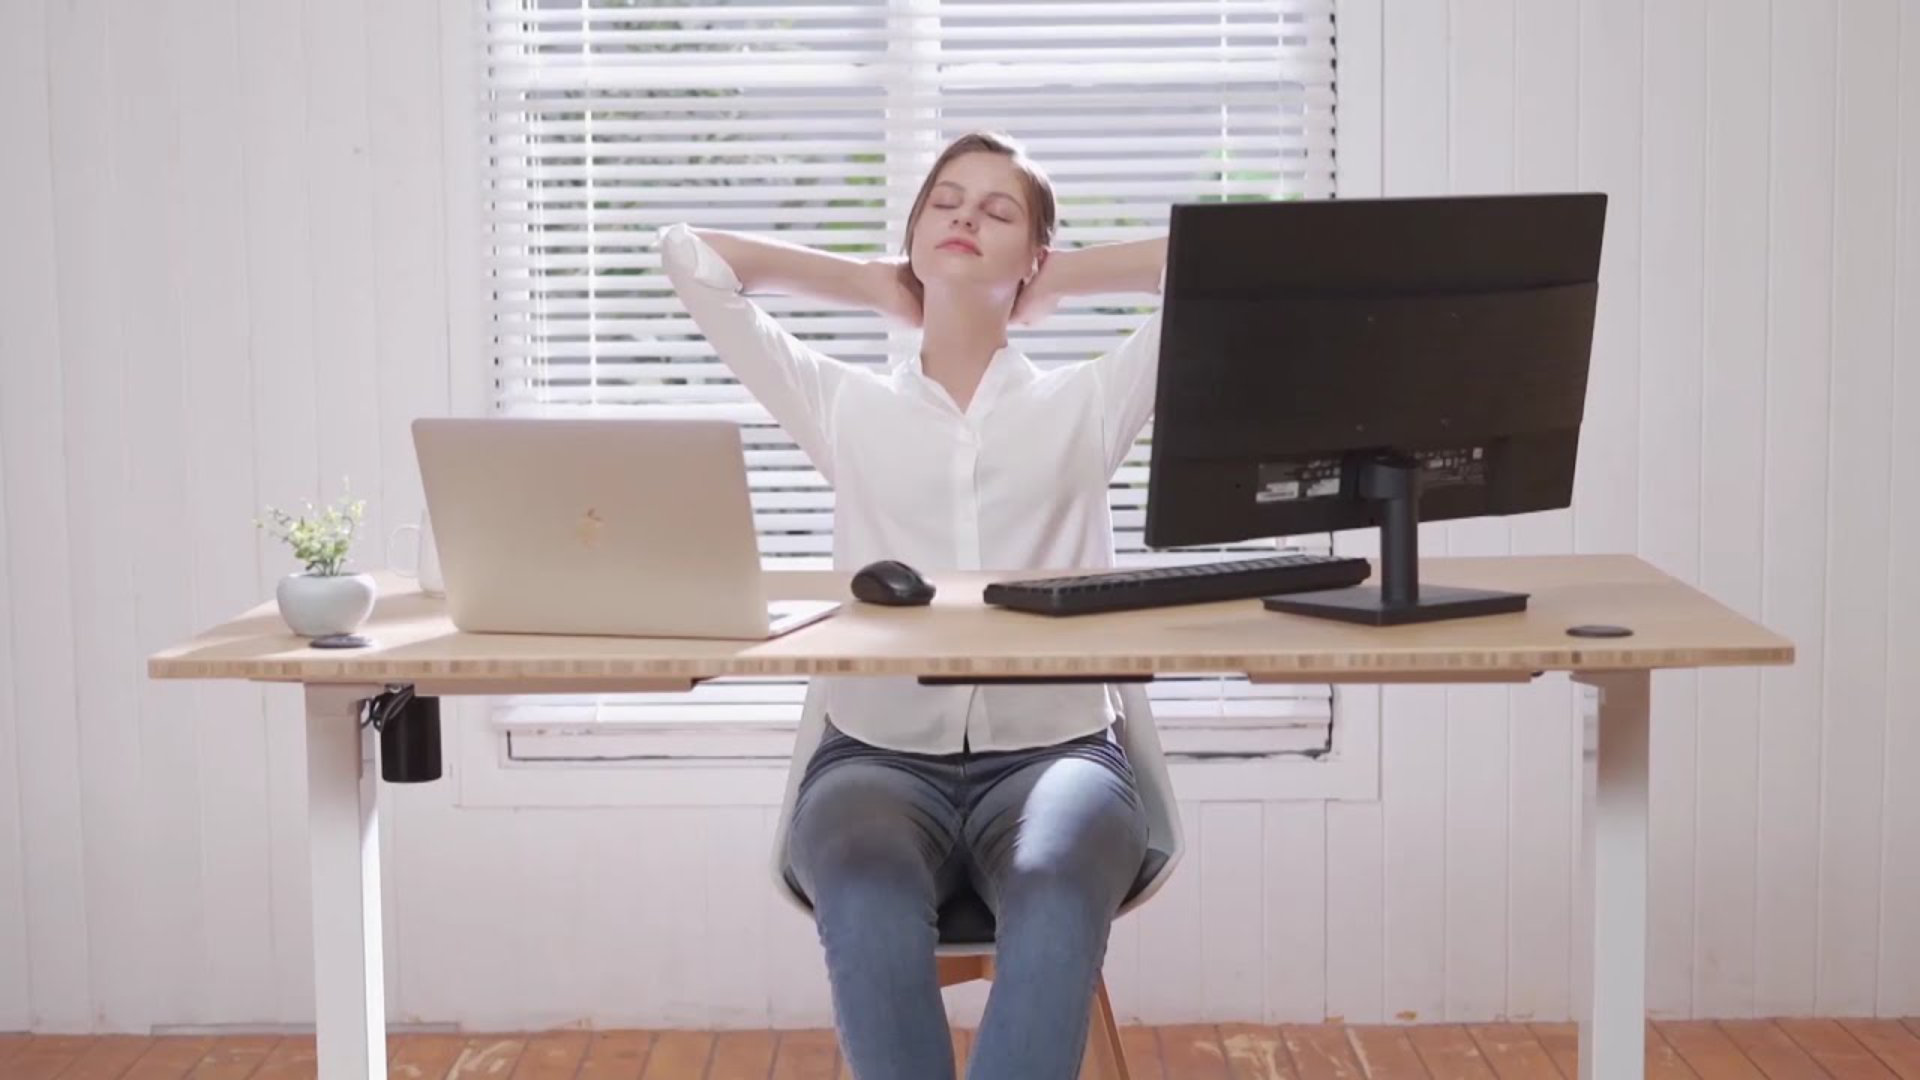 Save up to $50 on these Flexispot standing desks